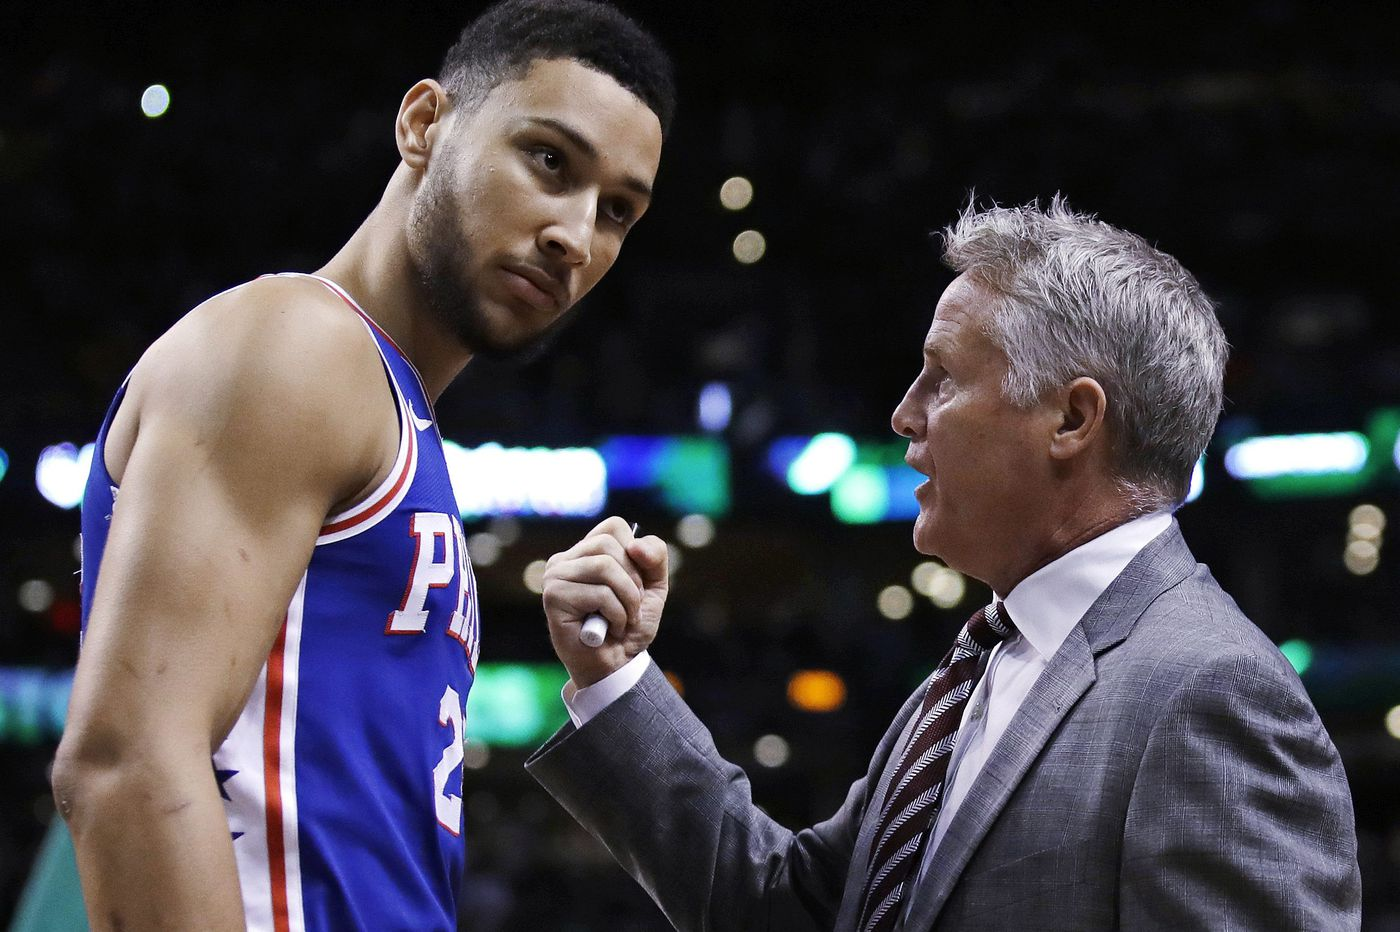 Sixers offseason work was done with the goal of an NBA Finals' appearance in mind